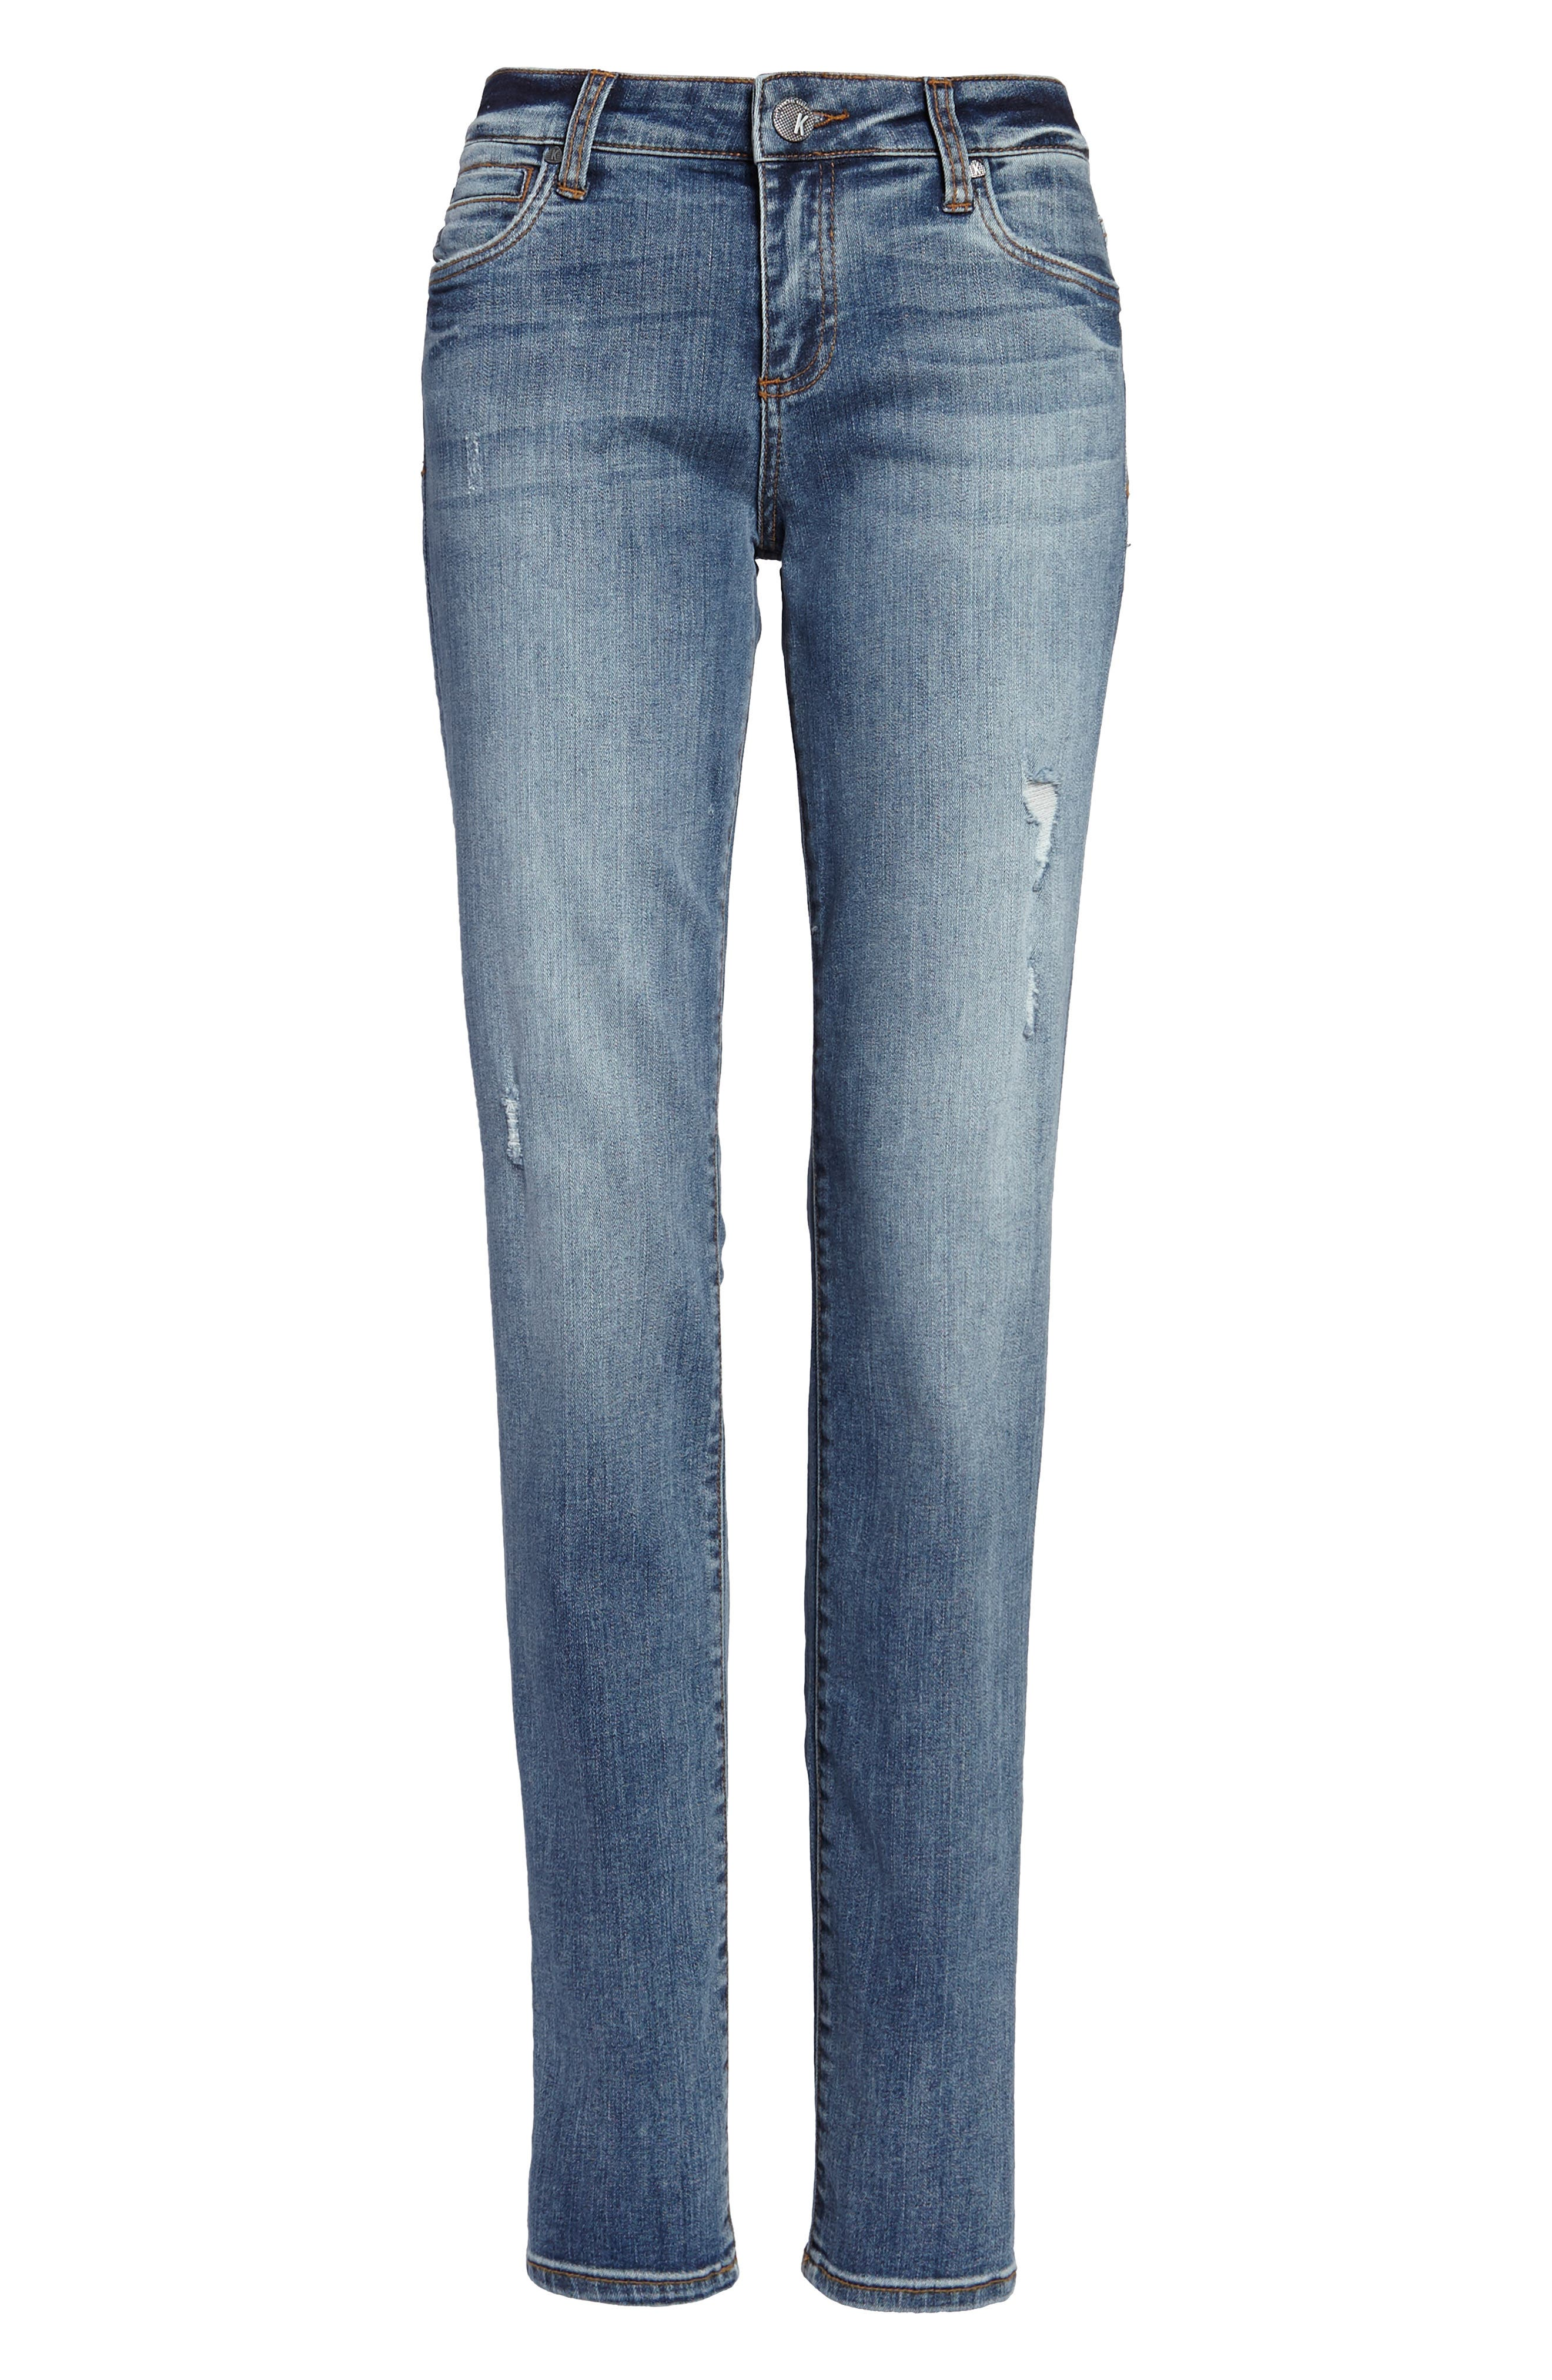 Diana Stretch Skinny Jeans,                             Alternate thumbnail 5, color,                             453